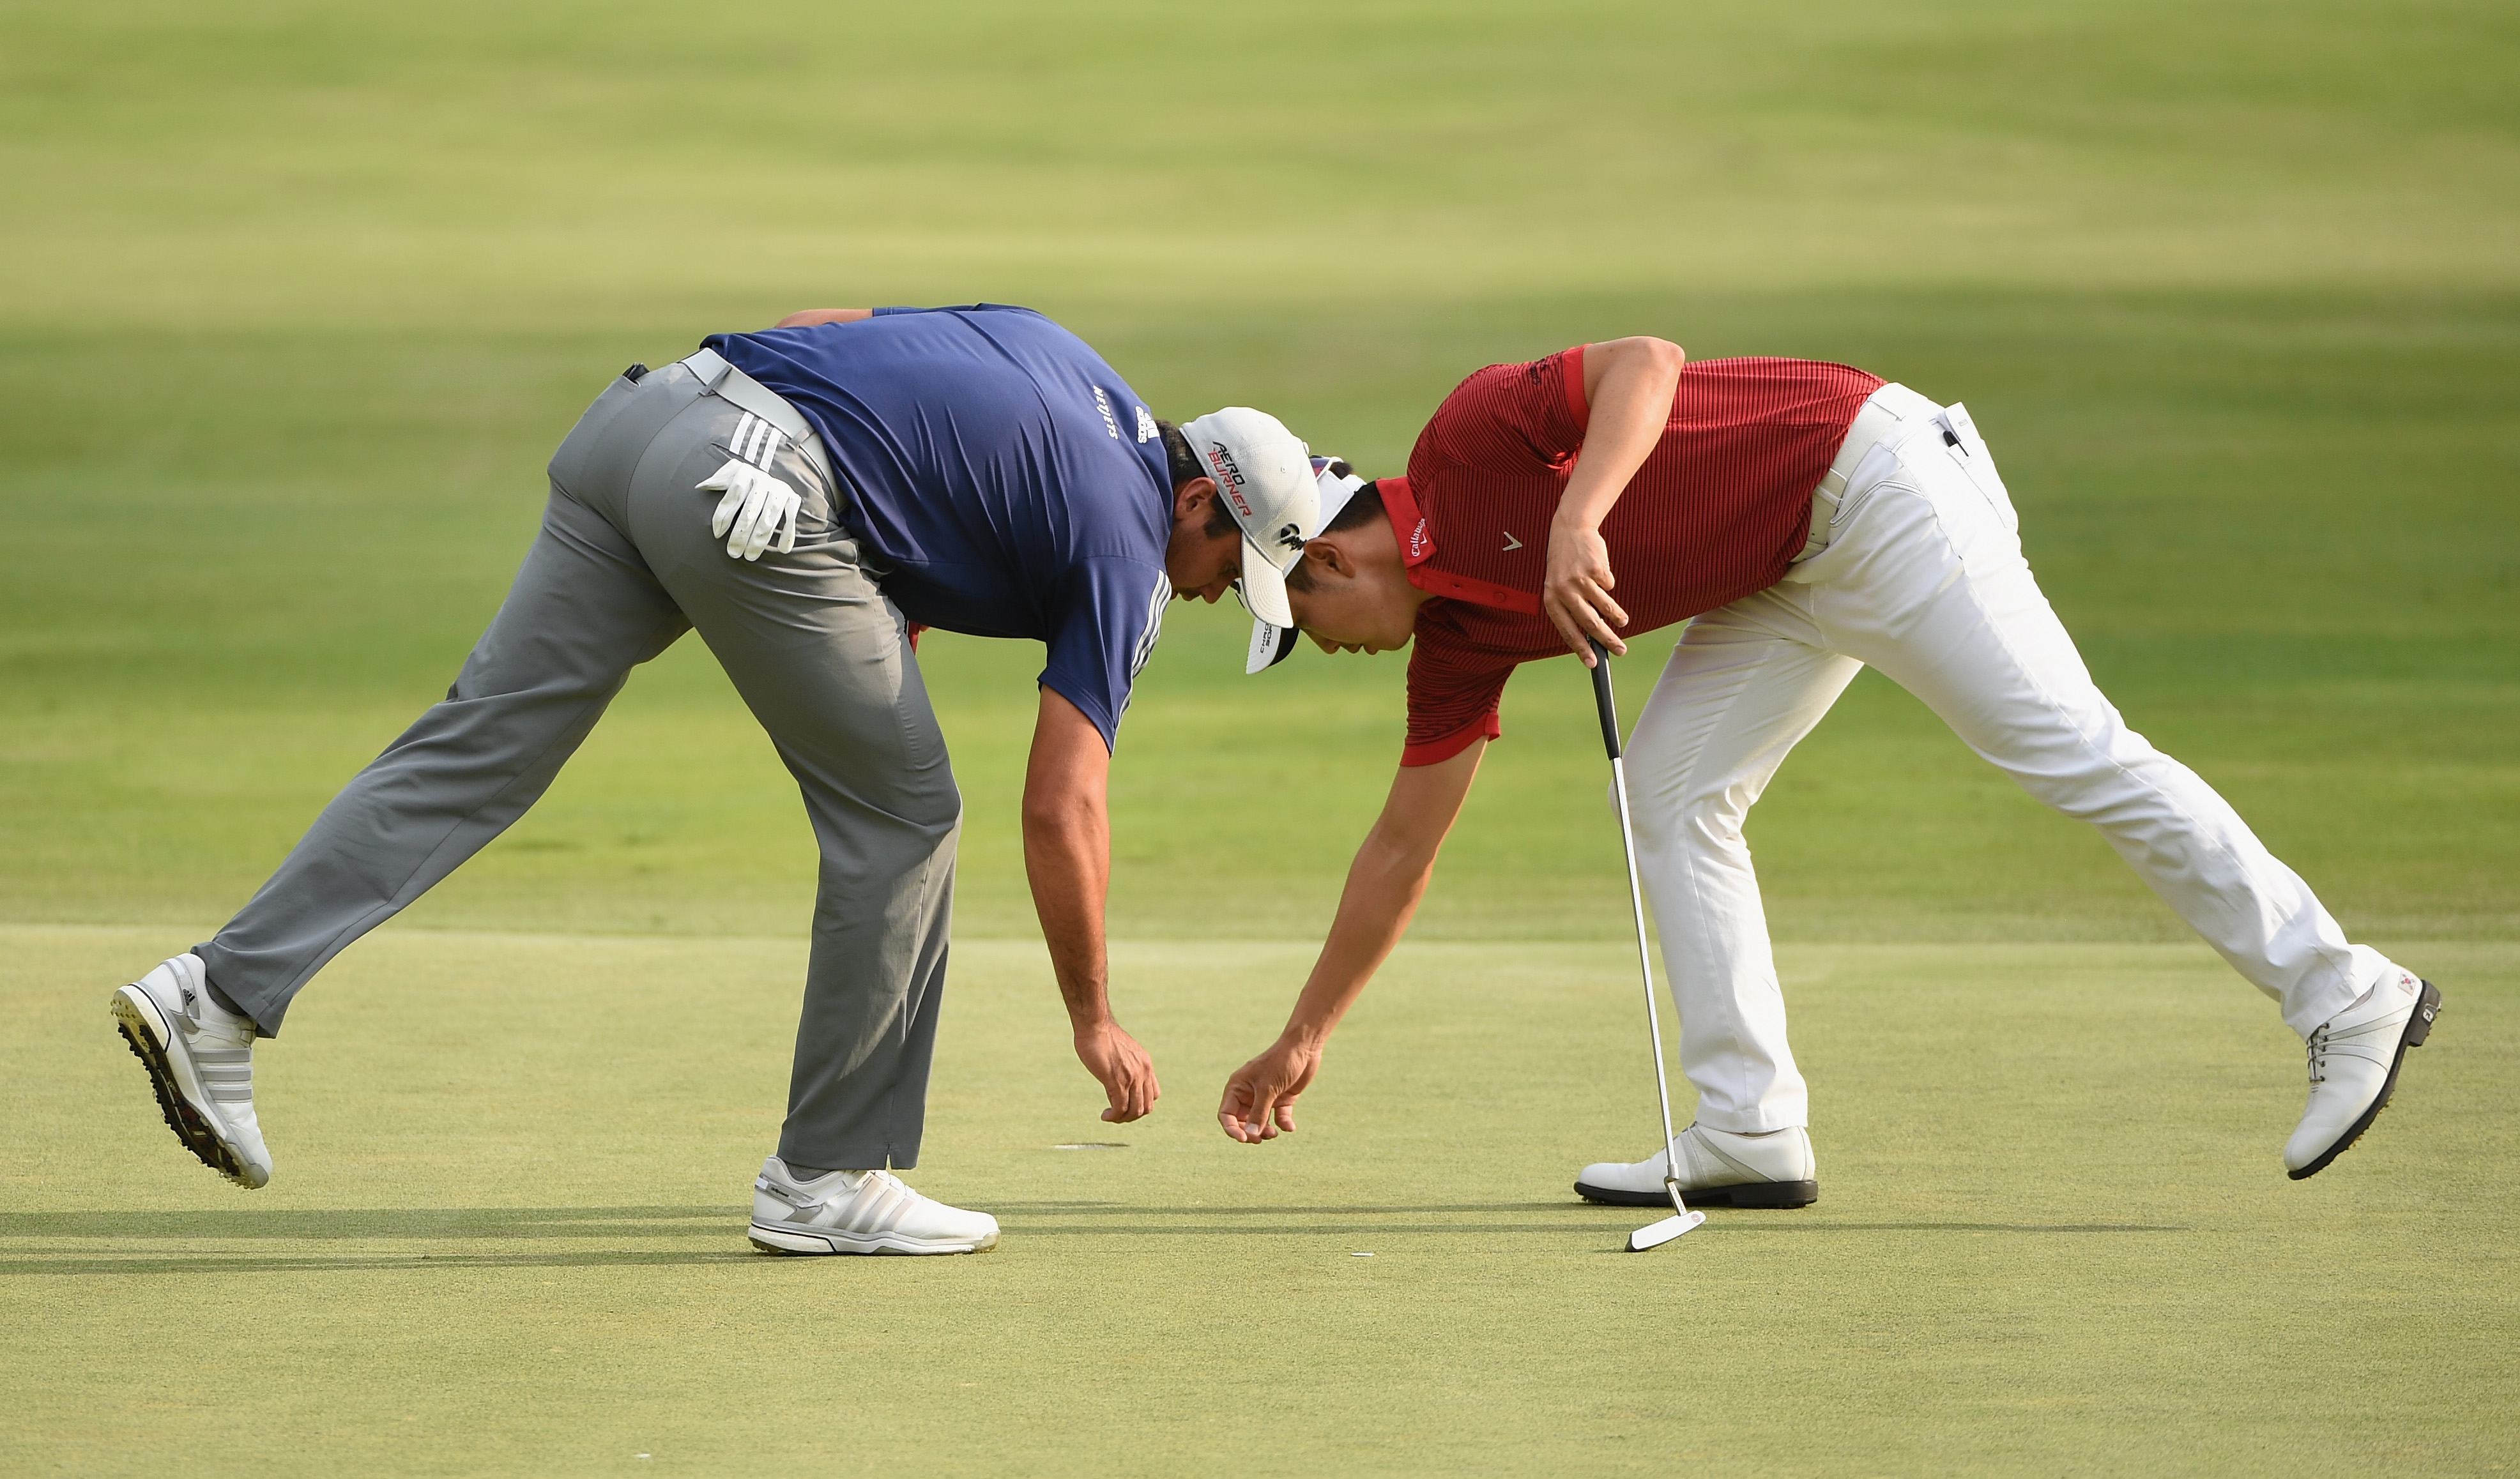 Jason Day and Sang-Moon Bae indulge in a spot of synchro ball-marking at the Barclays (Photo: Ross Kinnaird/Getty Images)